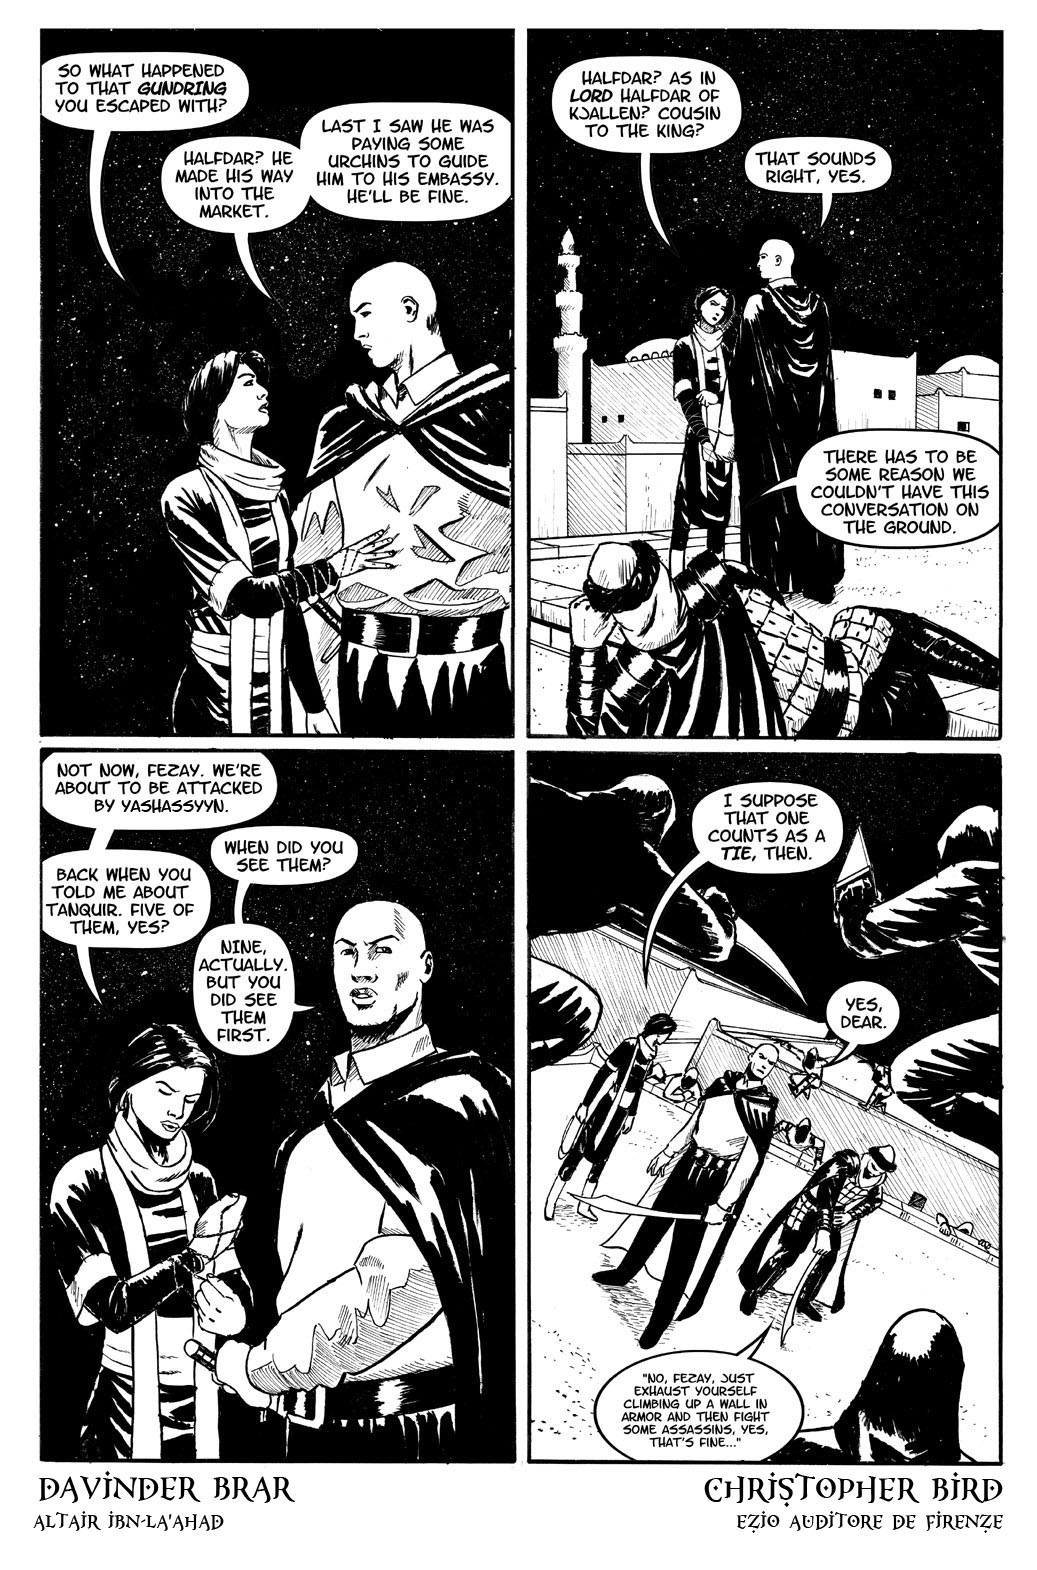 Book 4, page 8